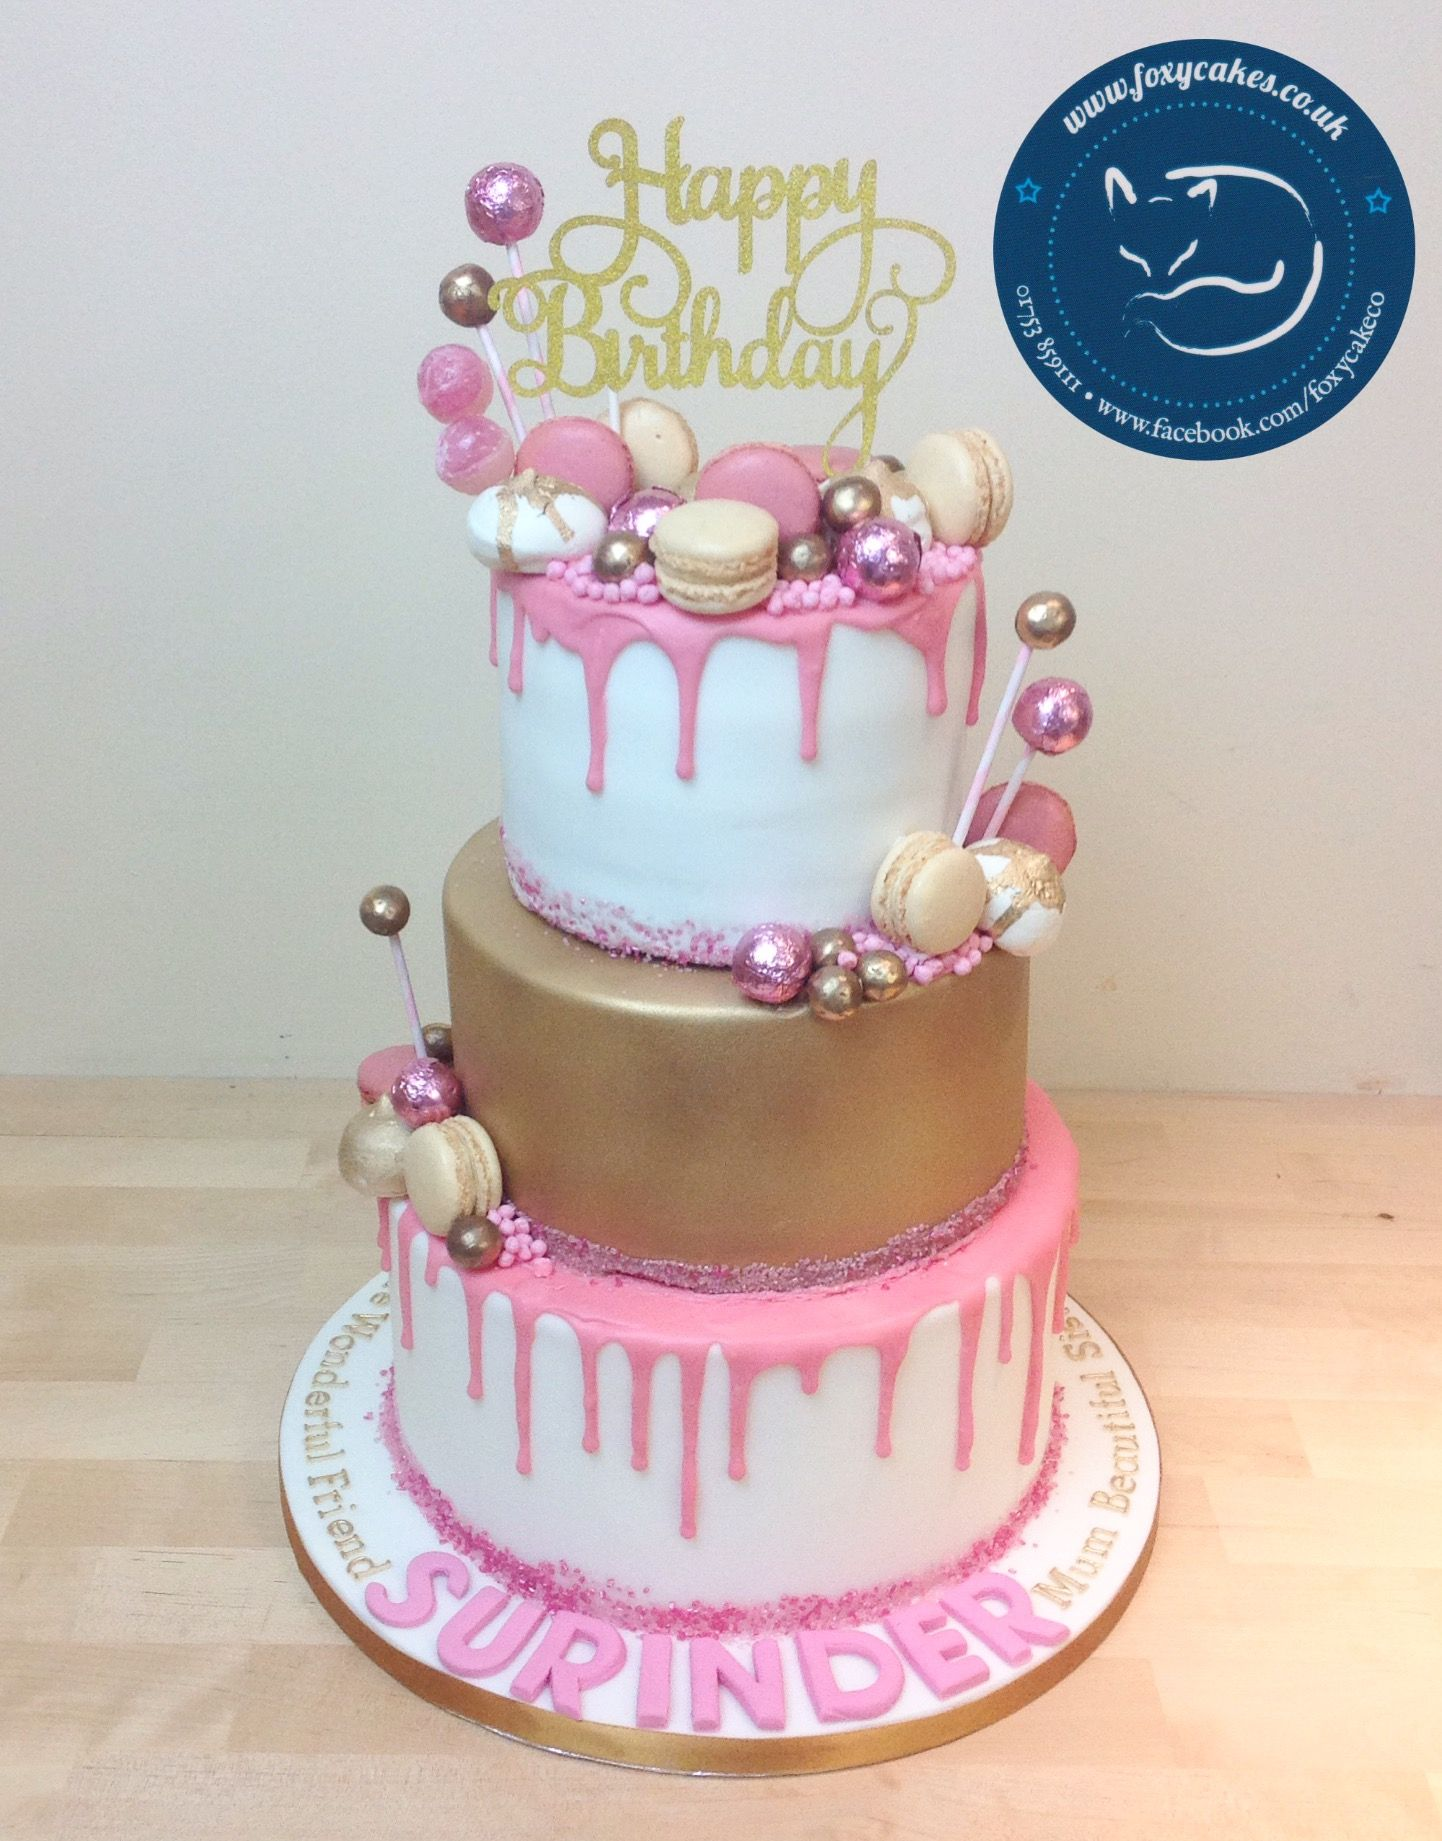 Strange Pink And Gold Drip Cake Made By The Foxy Cake Co 30Th Birthday Funny Birthday Cards Online Alyptdamsfinfo